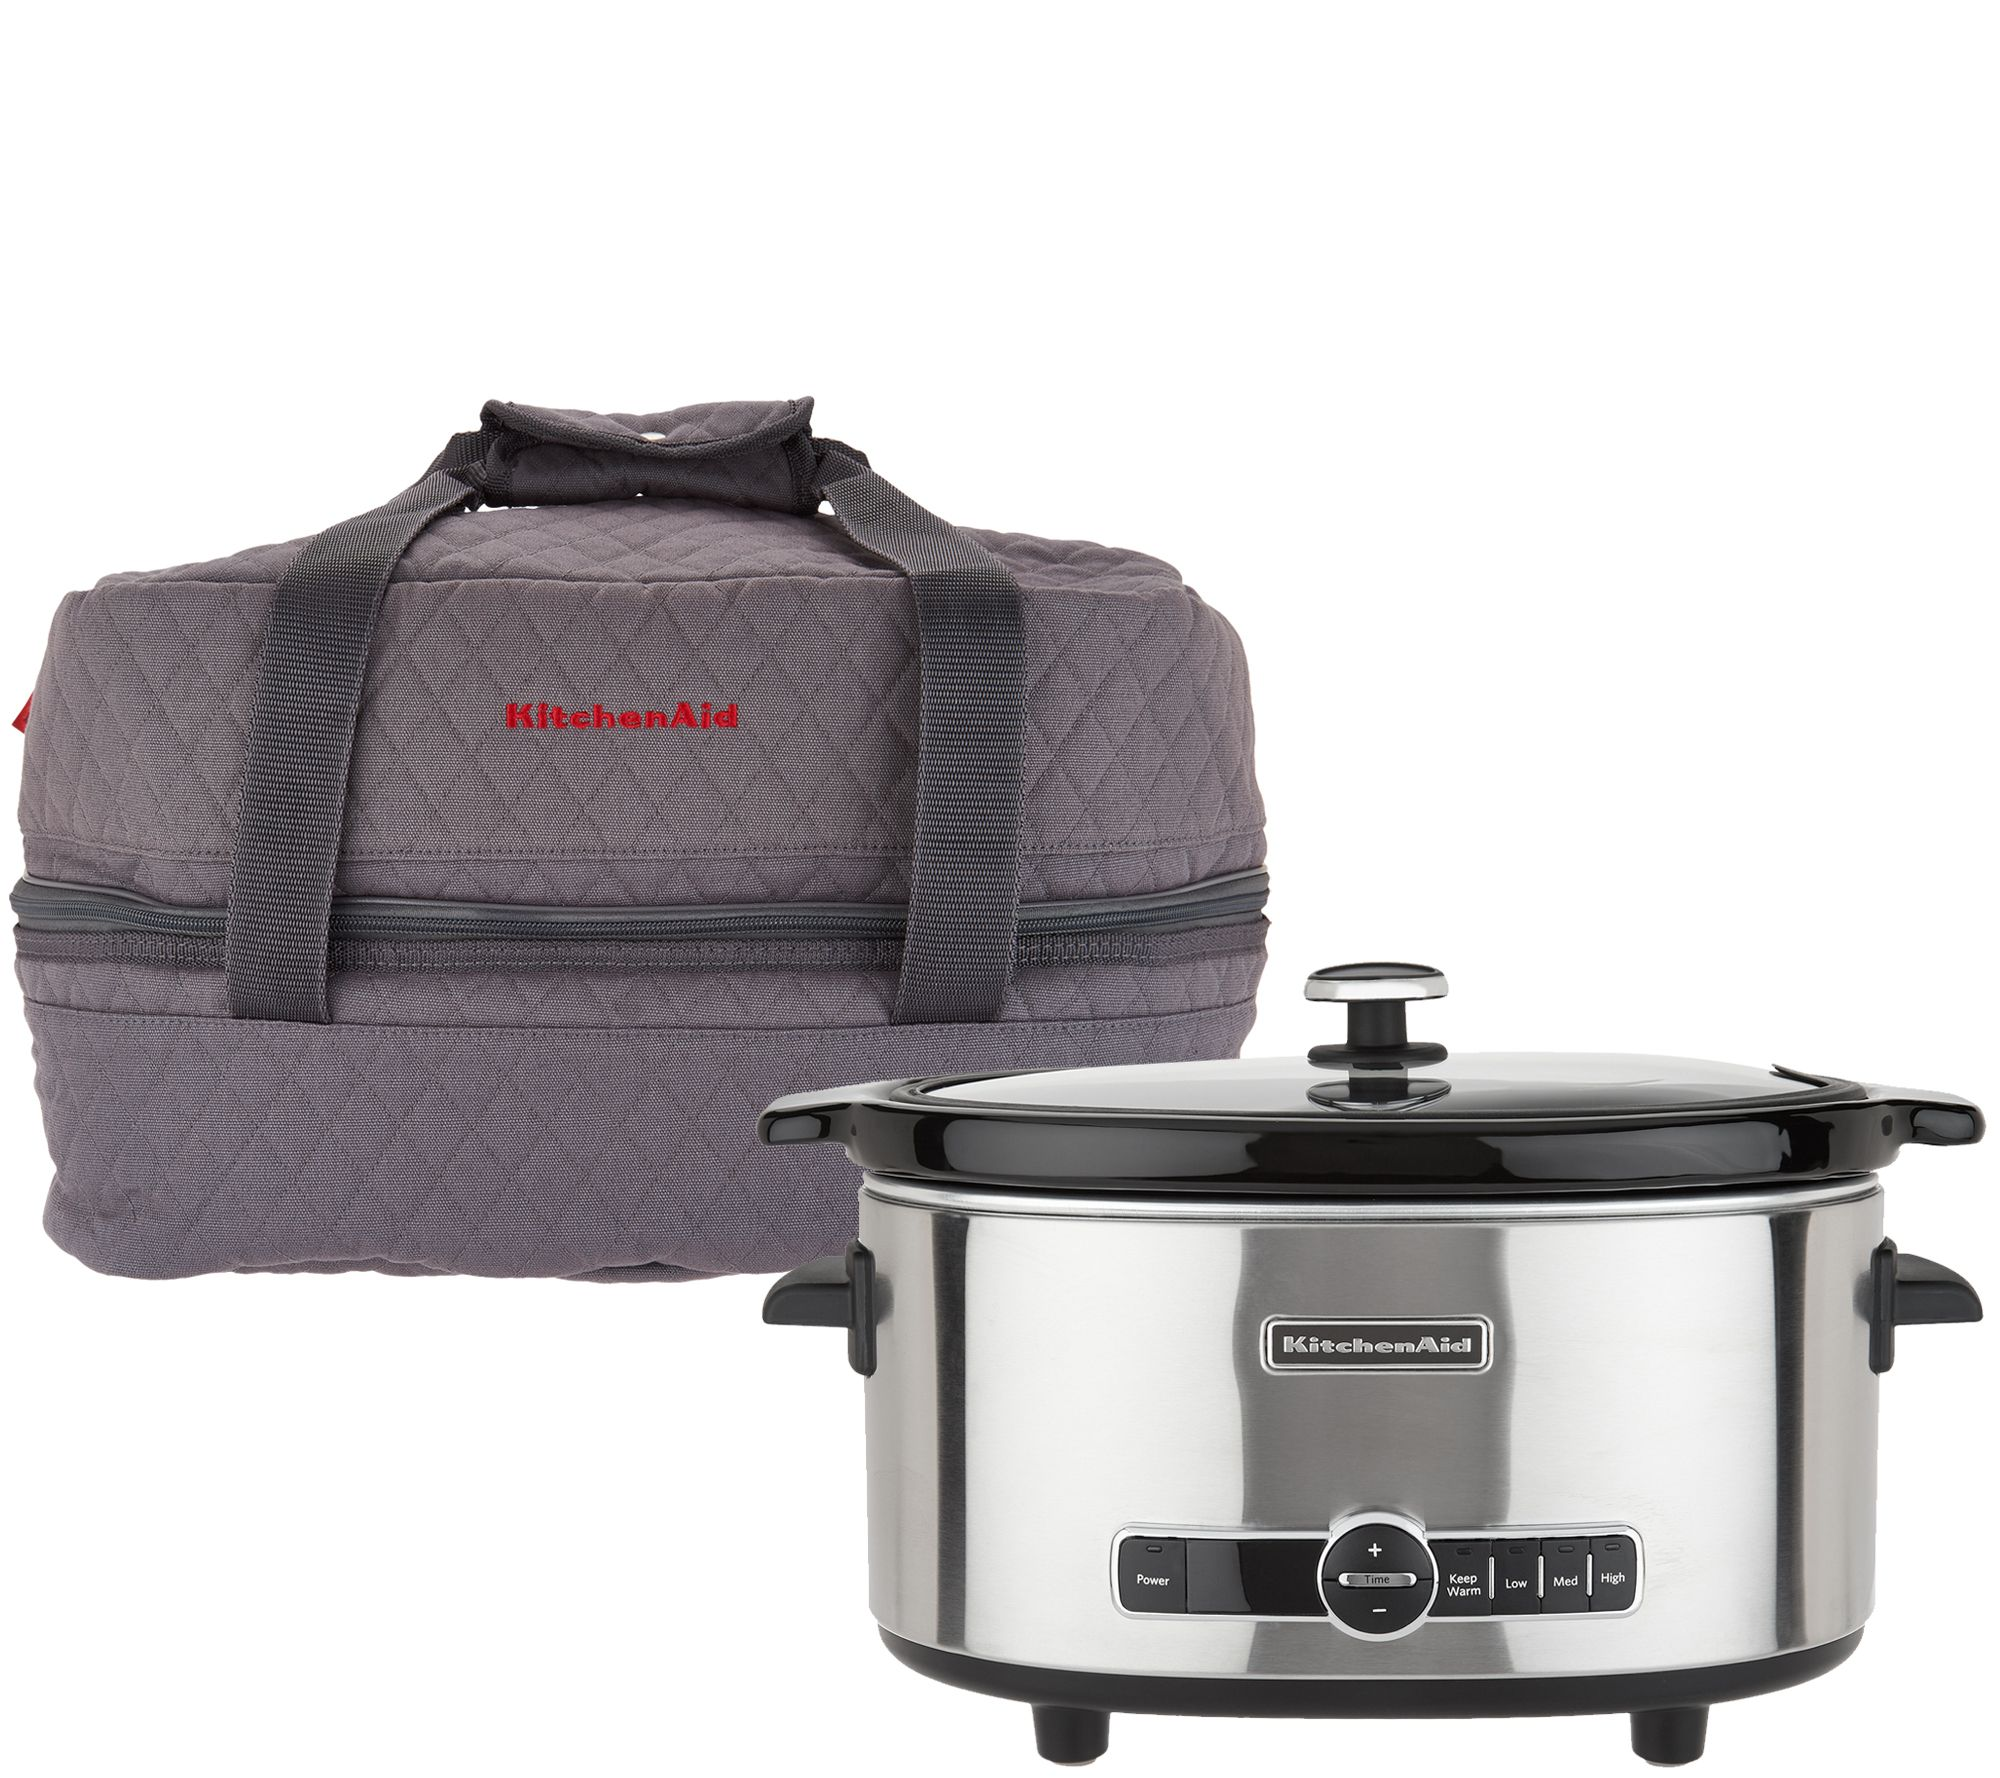 kitchen aid slow cooker ge kitchenaid 6 quart programmable with travel